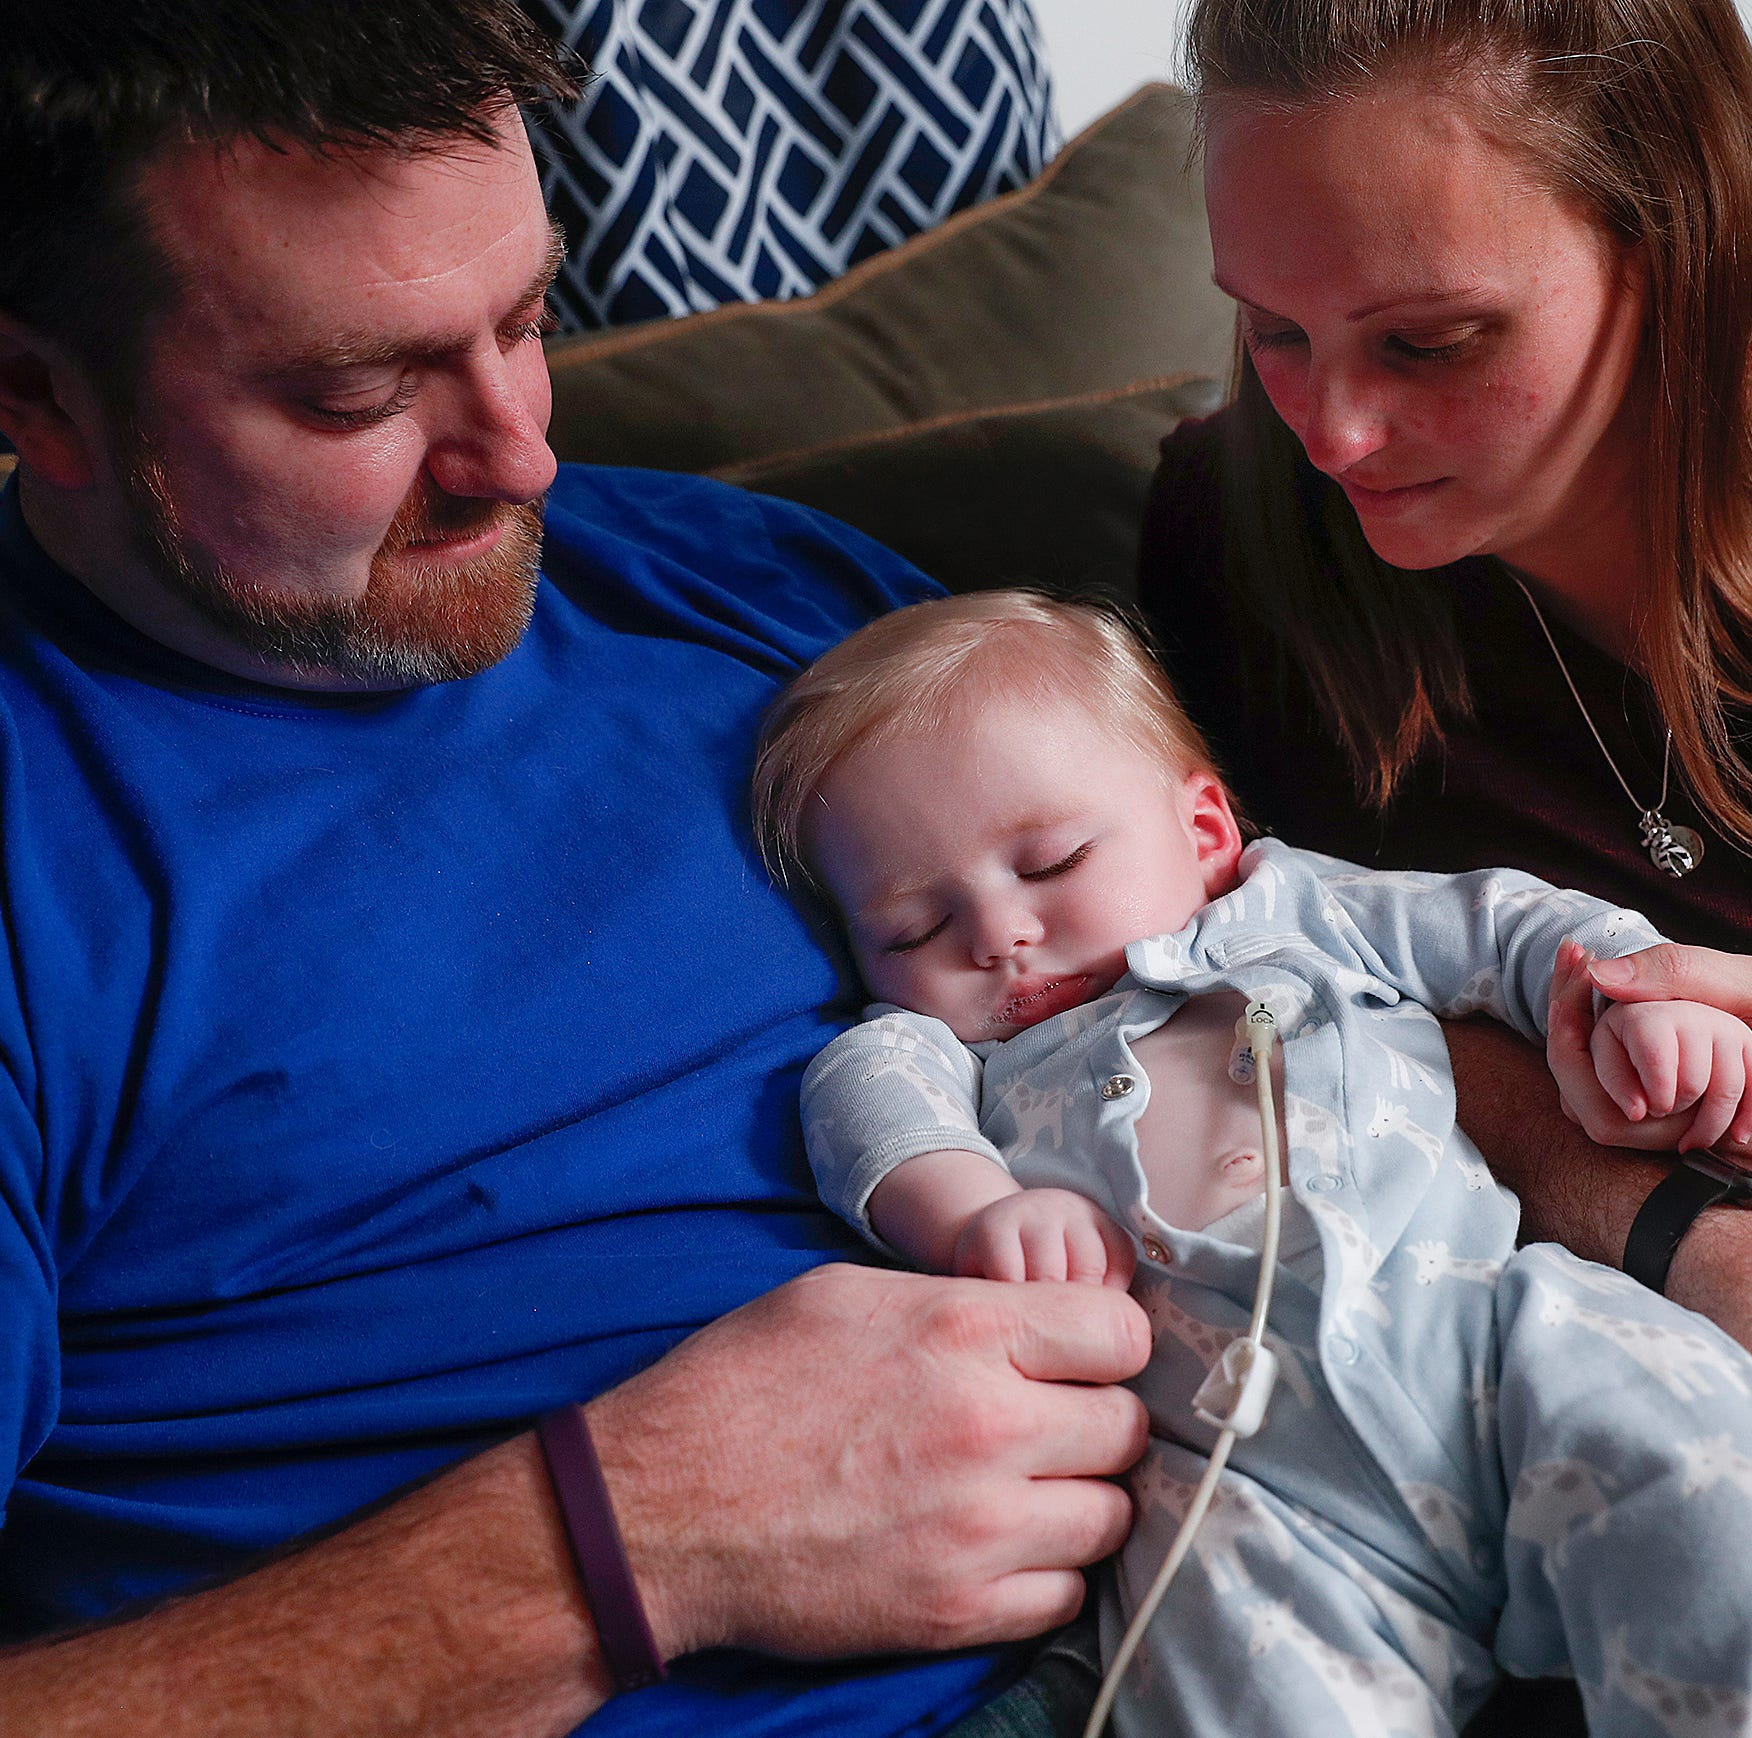 They can't save their child, but Bryce's parents want to help others in his condition